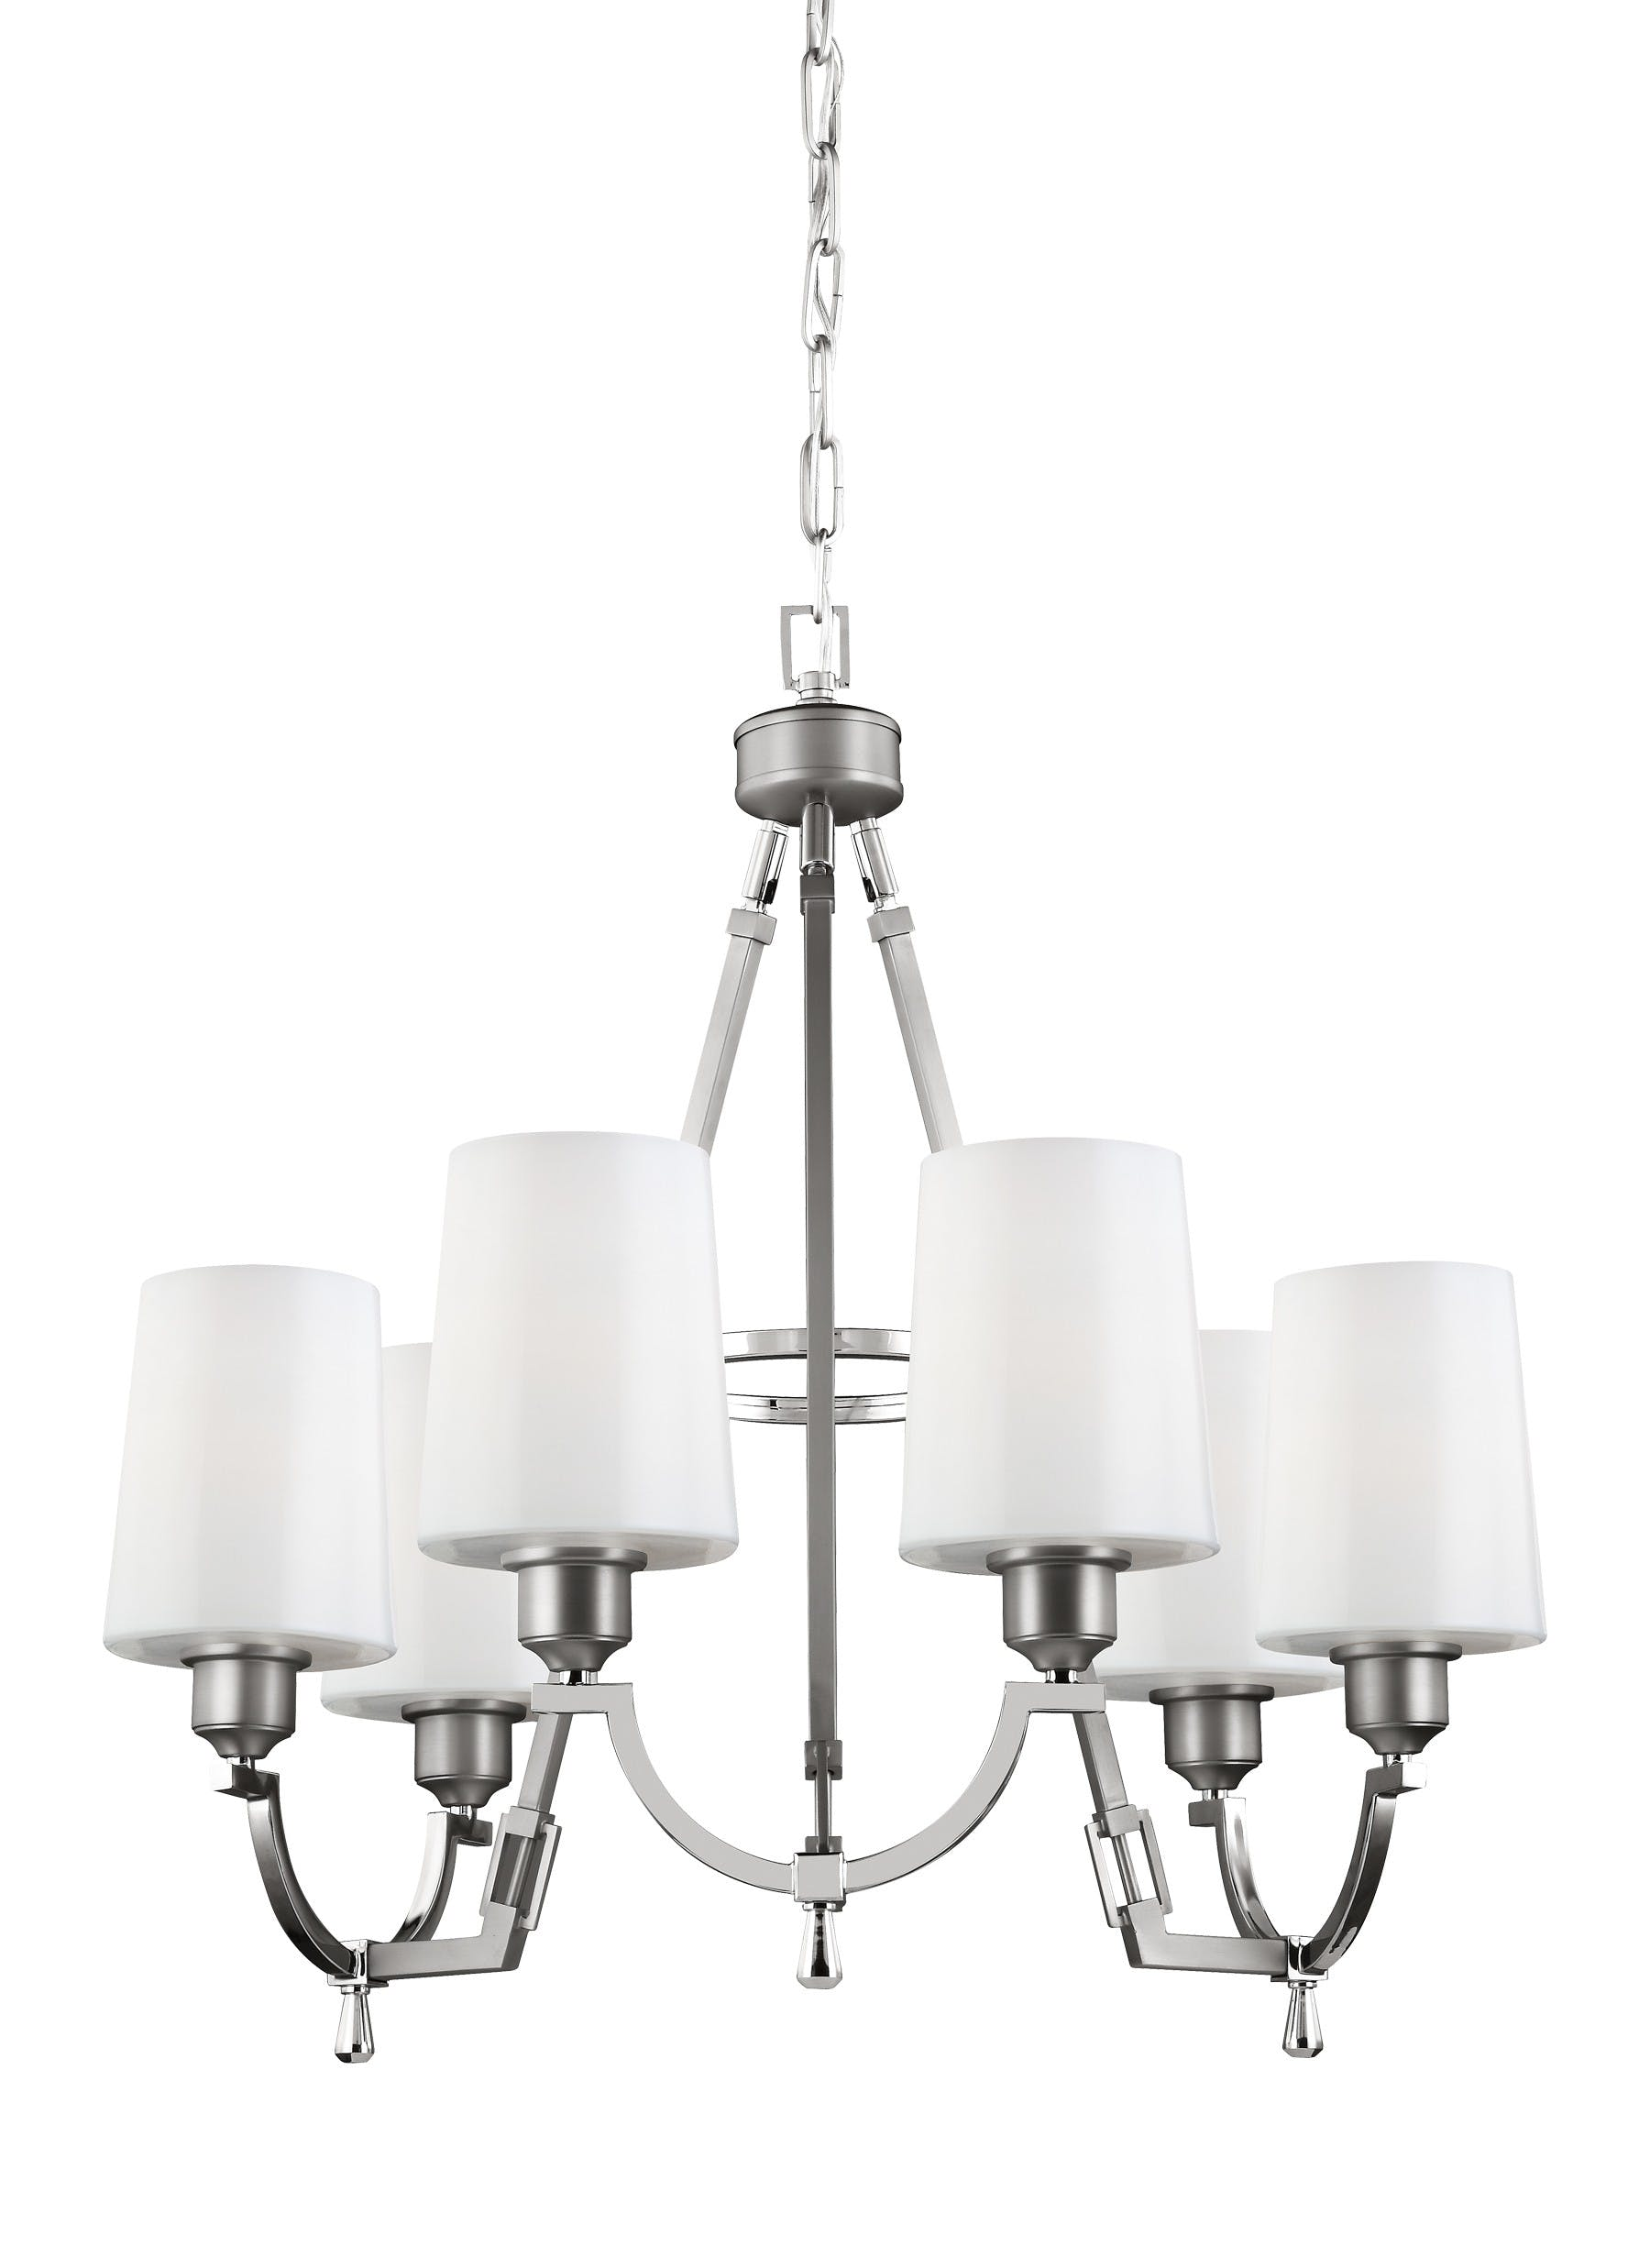 1800x2474 Murray Feiss Lamps And Lighting 6